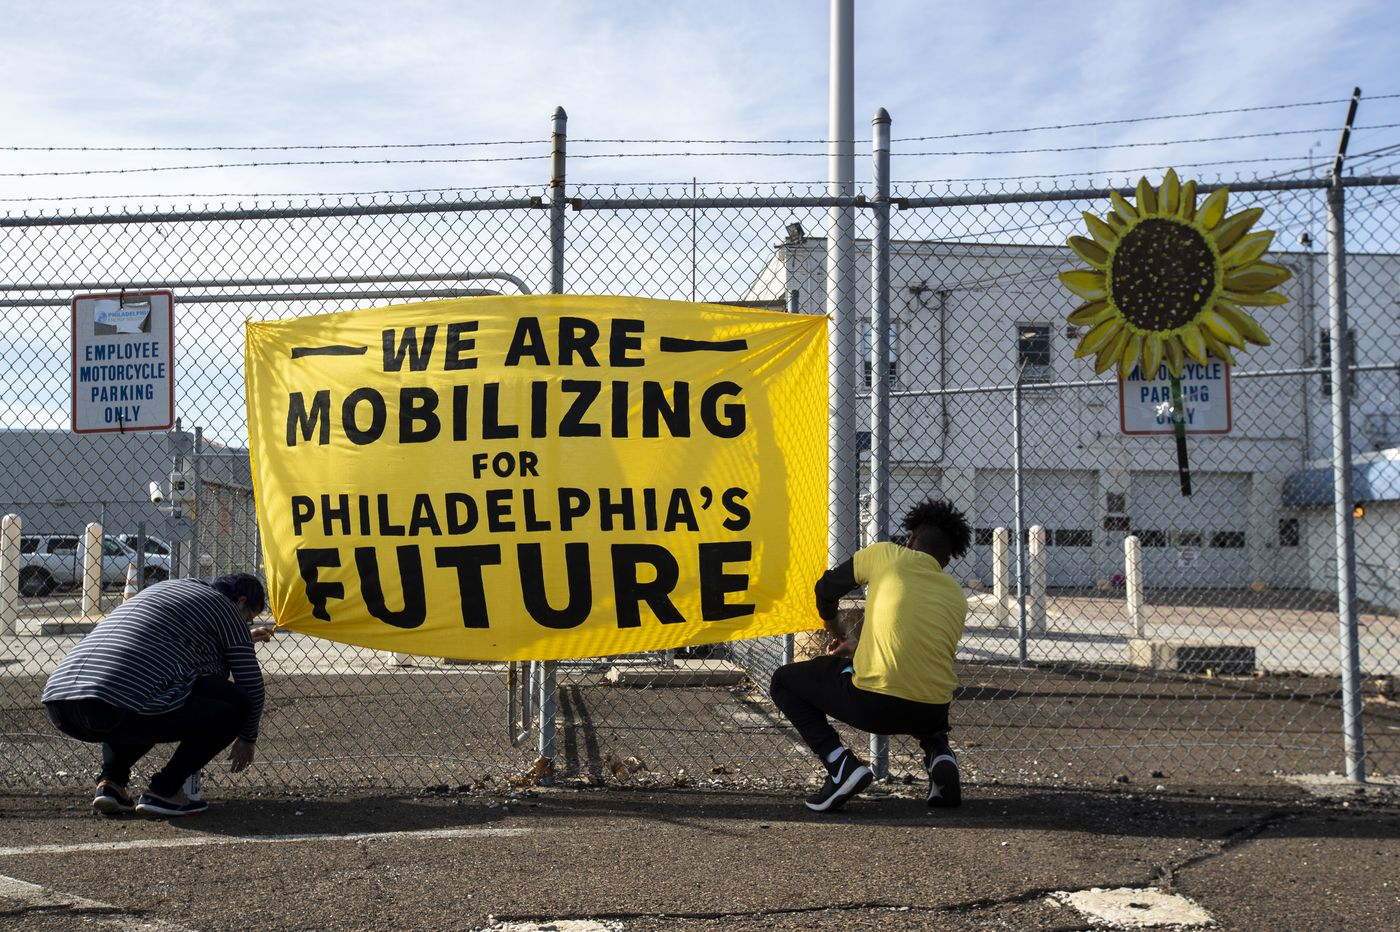 Philly refinery shutdown pitted workers against climate activists. Did it have to be that way?